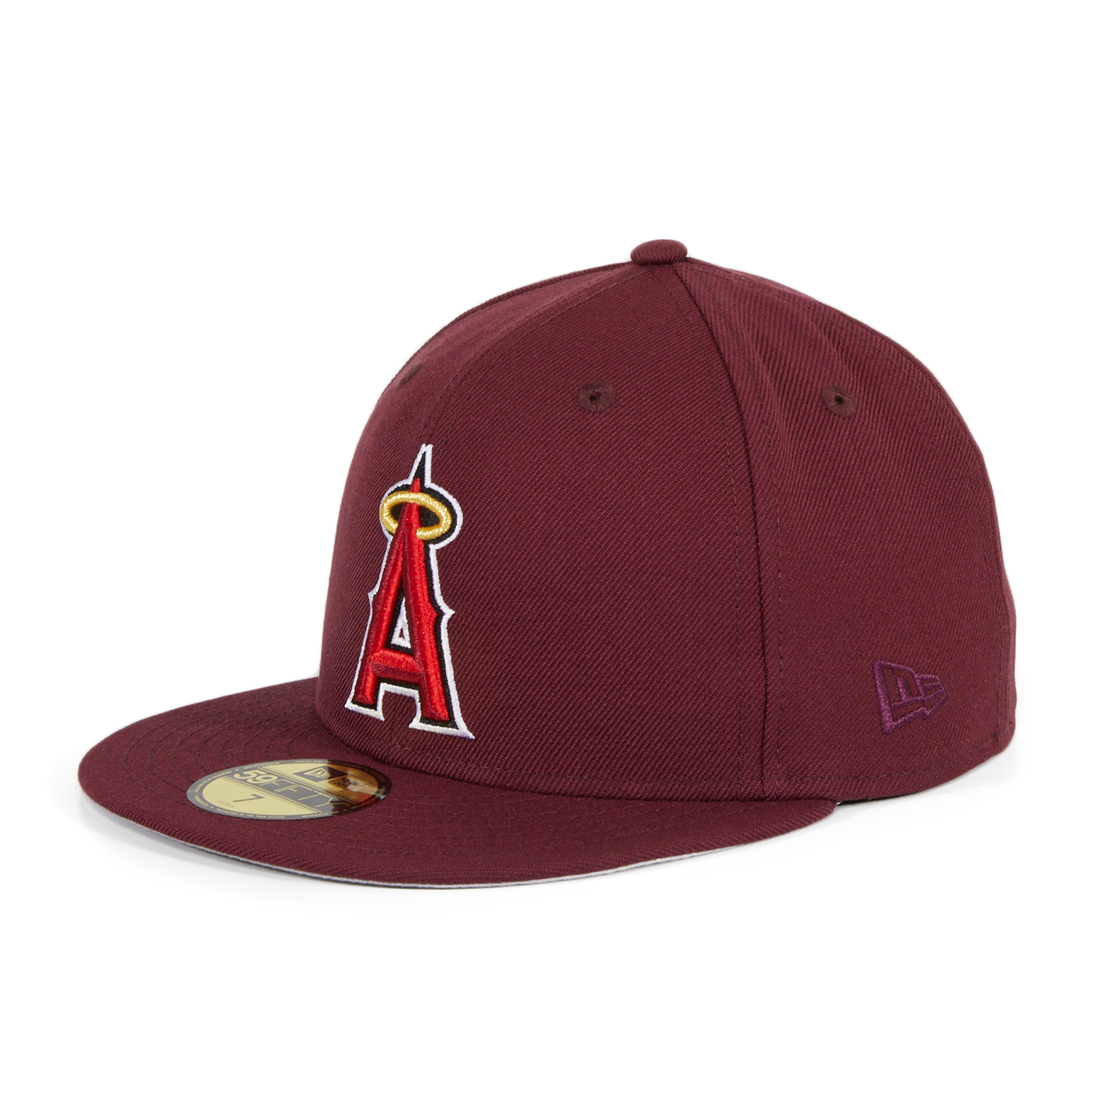 Exclusive New Era 59Fifty Los Angeles Angels Hat - Maroon